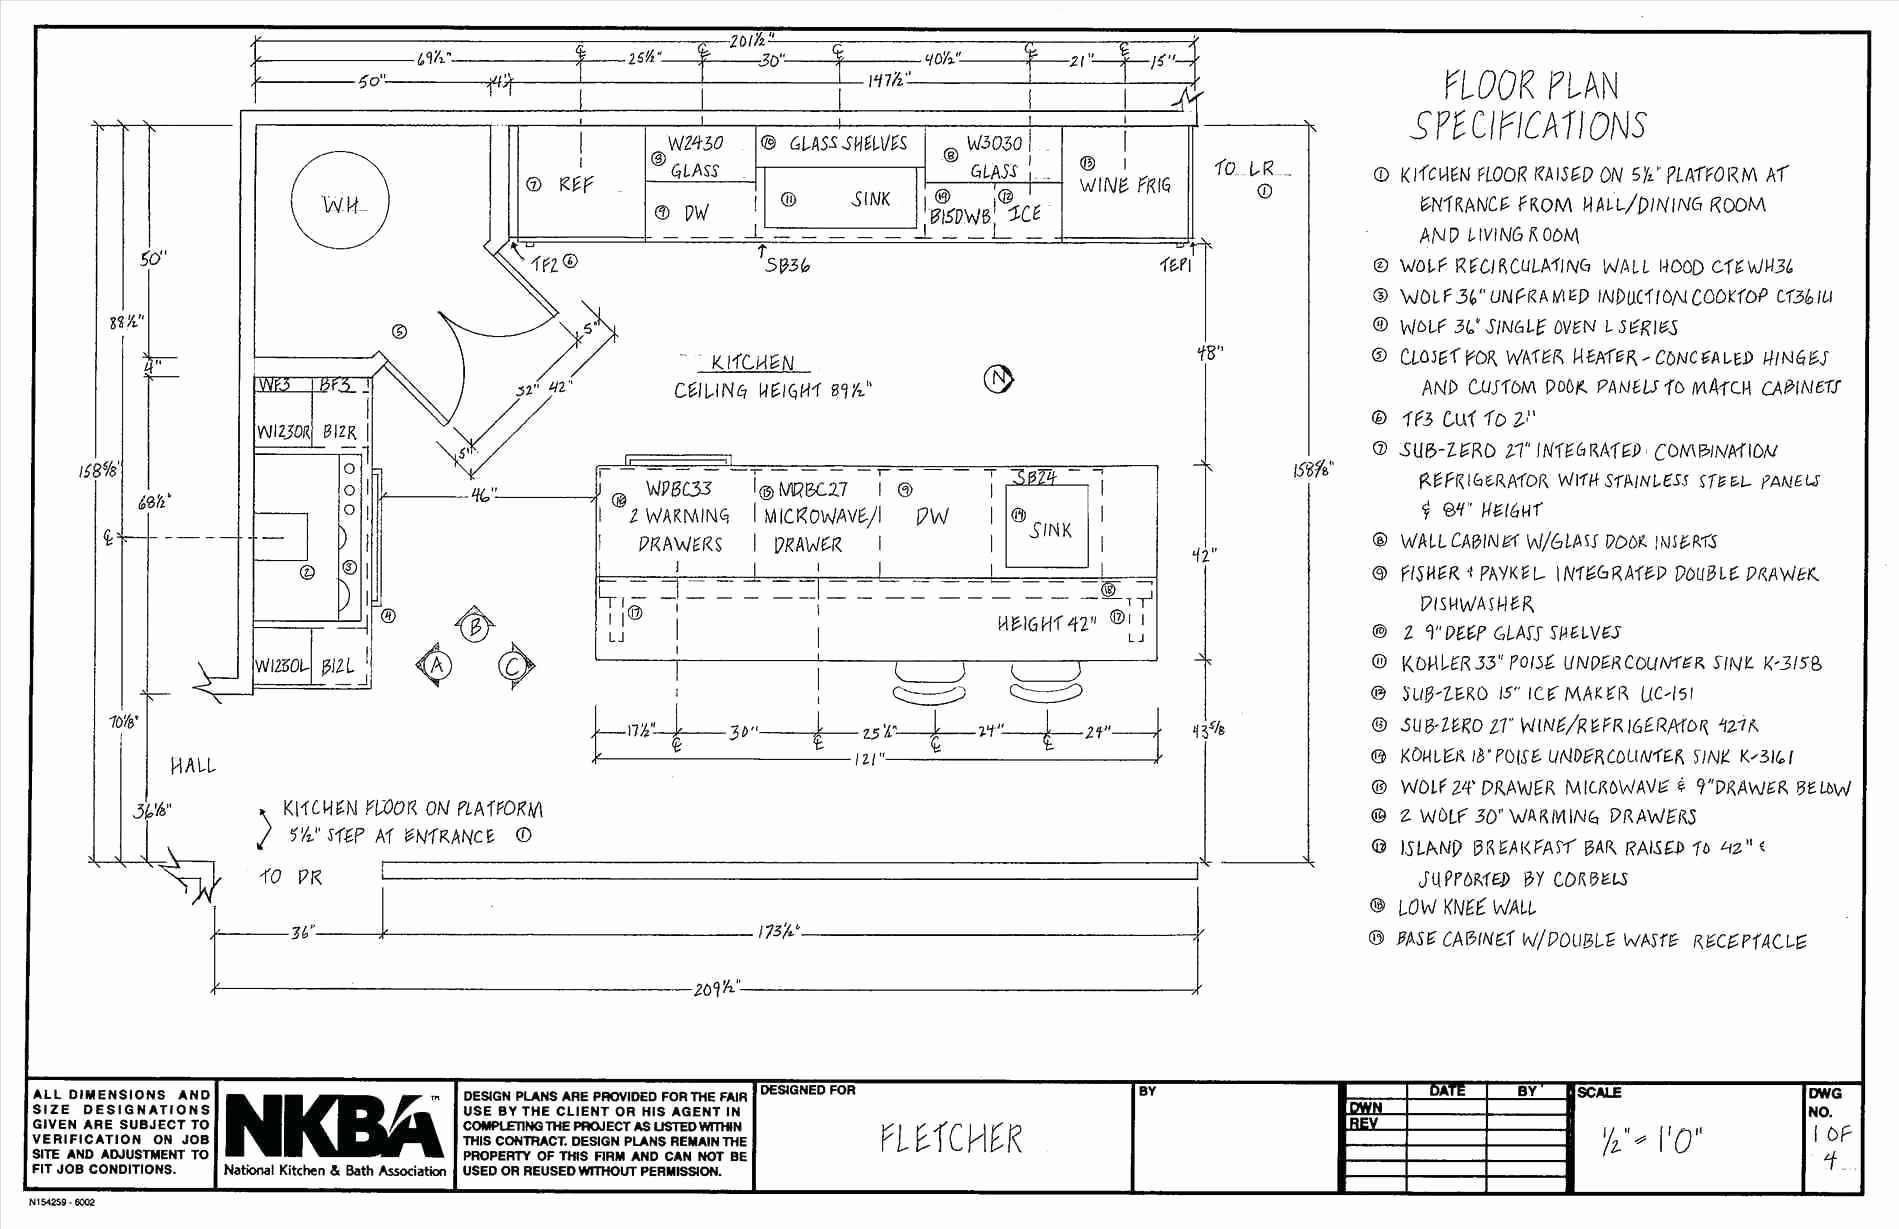 Bathroom Remodel Project Plan Template New Home Renovation Project Plan Template Excel Unique